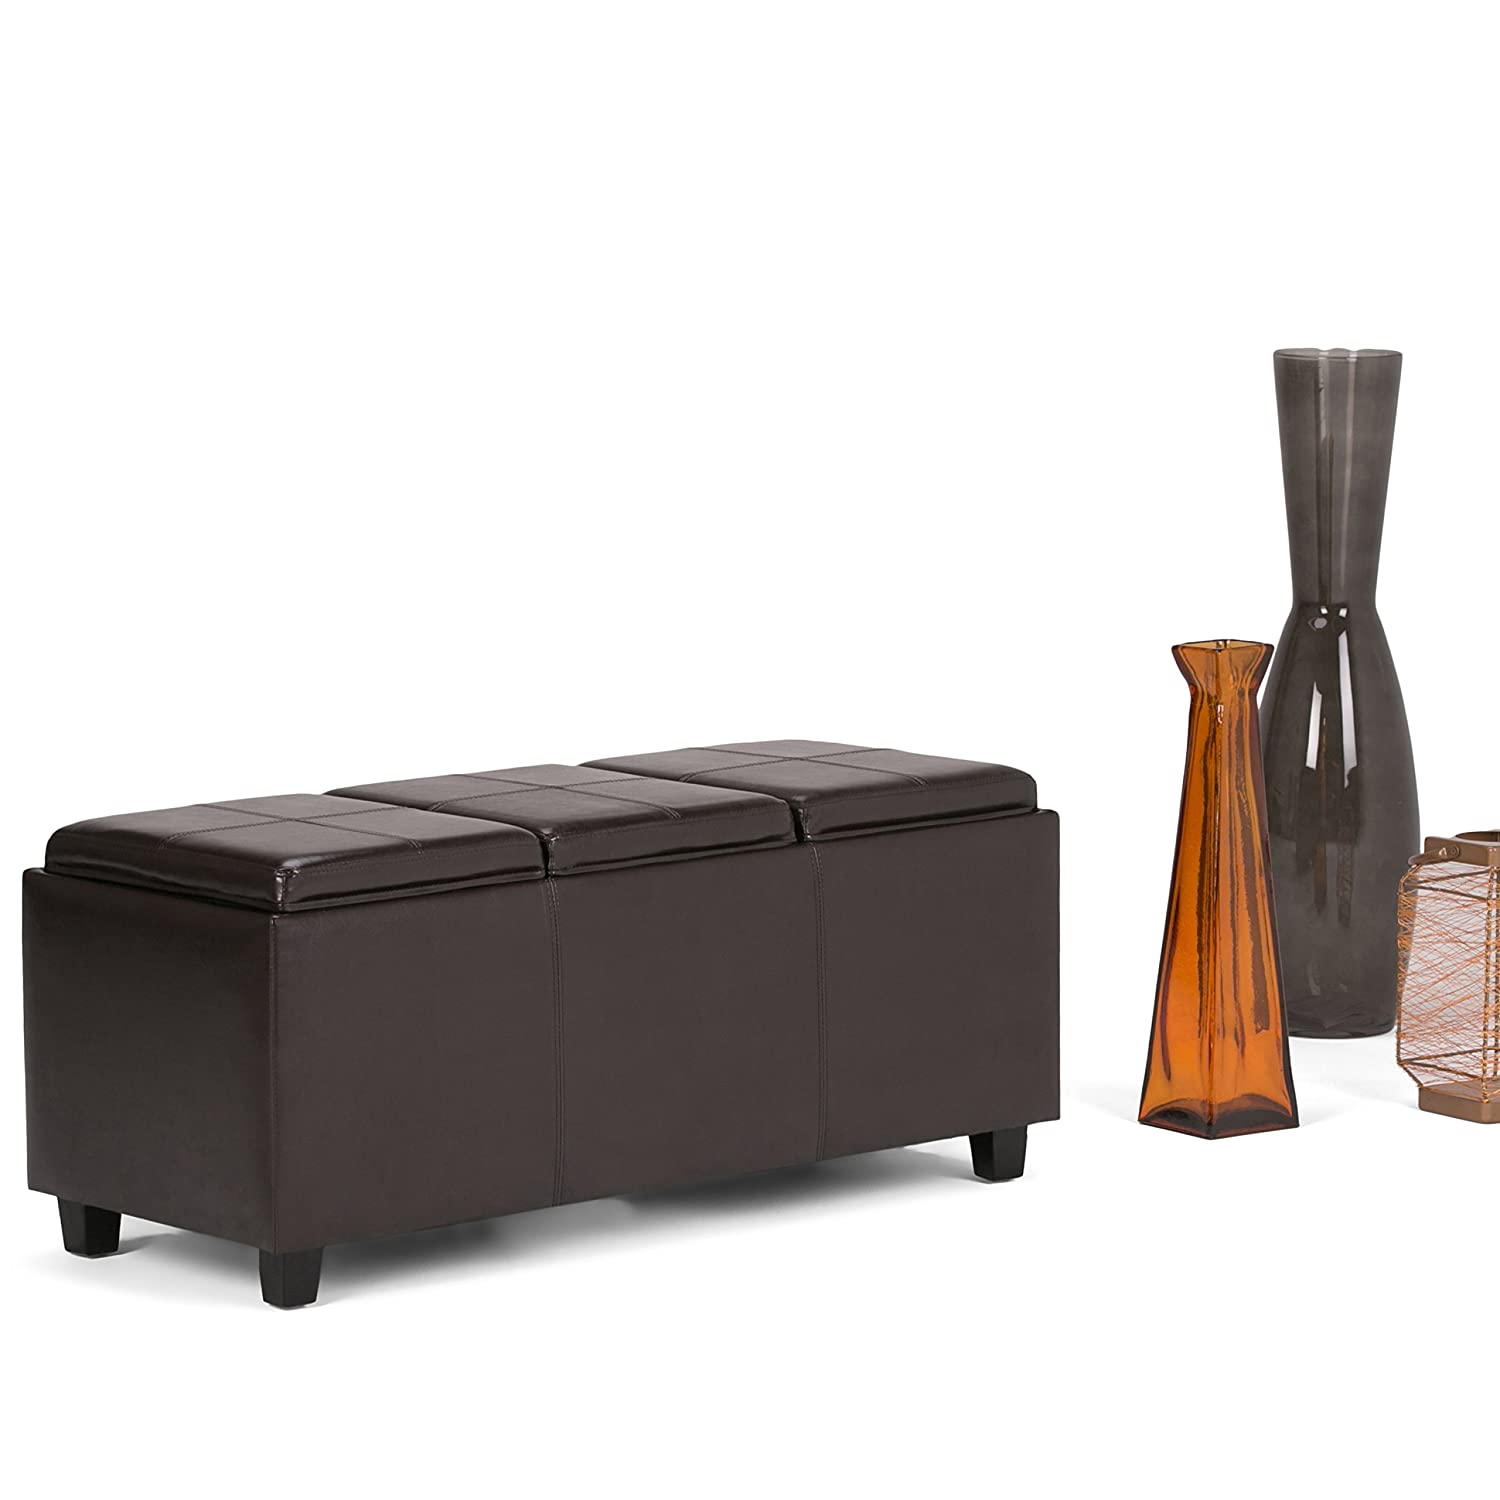 Amazon.com: Simpli Home Avalon Faux Leather Rectangular Storage Ottoman  with 3 Serving Trays, Large, Tanners Brown: Kitchen & Dining - Amazon.com: Simpli Home Avalon Faux Leather Rectangular Storage